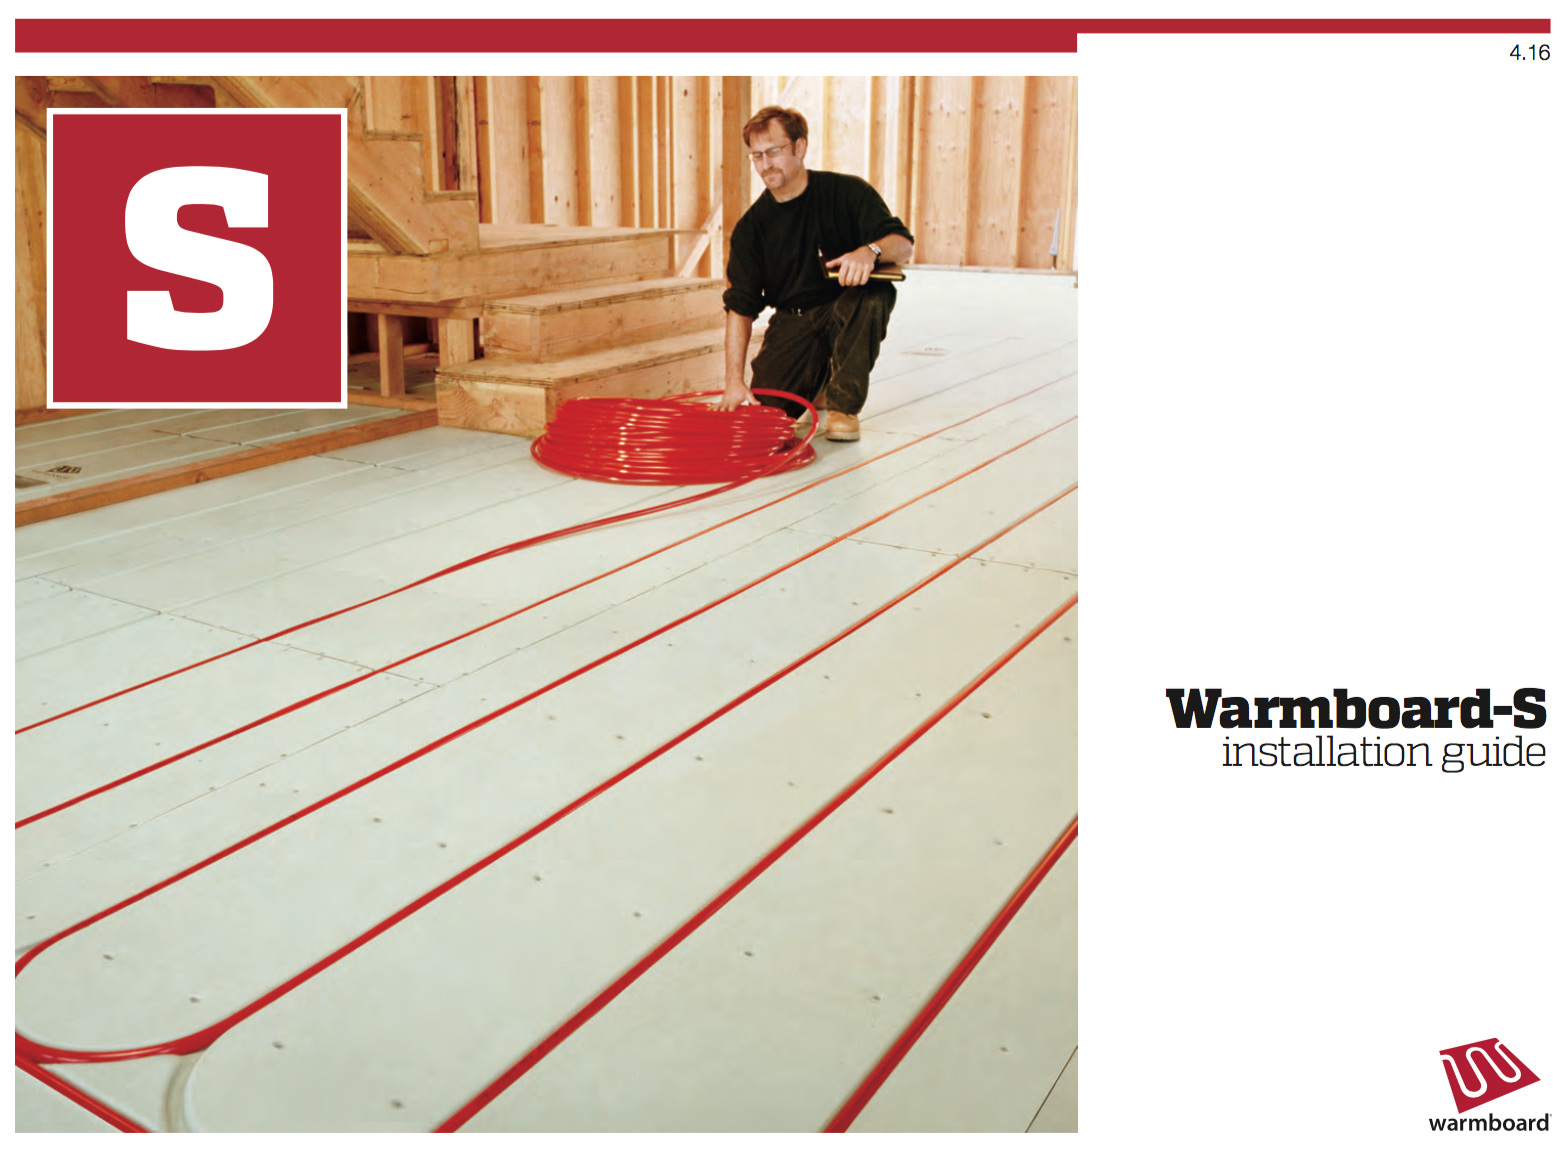 Warmboard-S Installation Guide